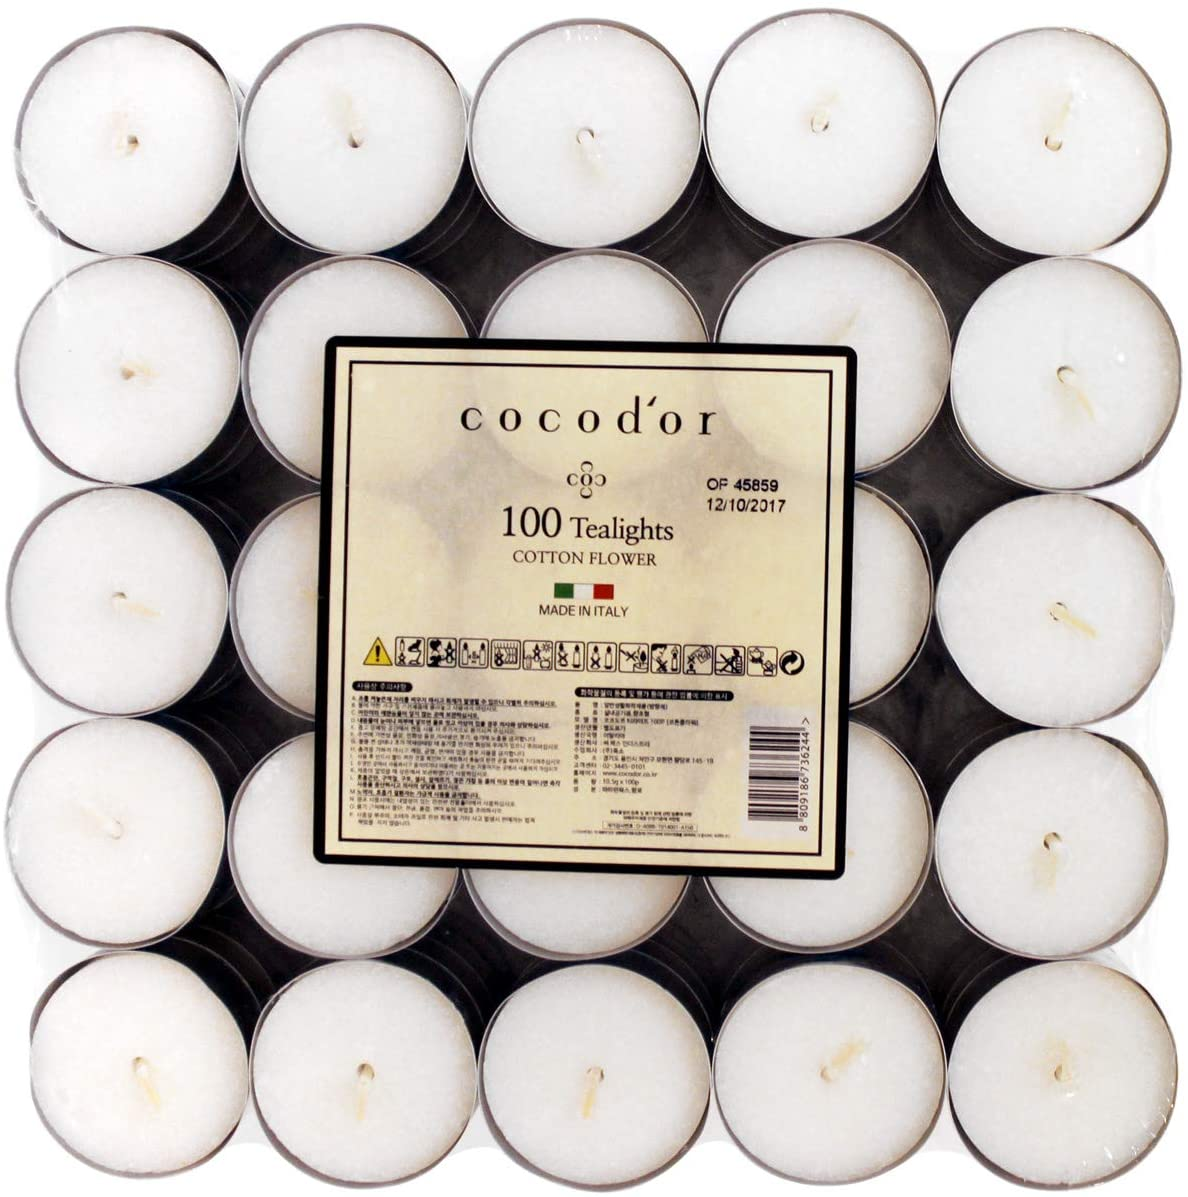 Cocodor Scented Tealight Candles/Cotton Flower / 100 Pack / 4-5 Hour Burn Time/Made in Italy